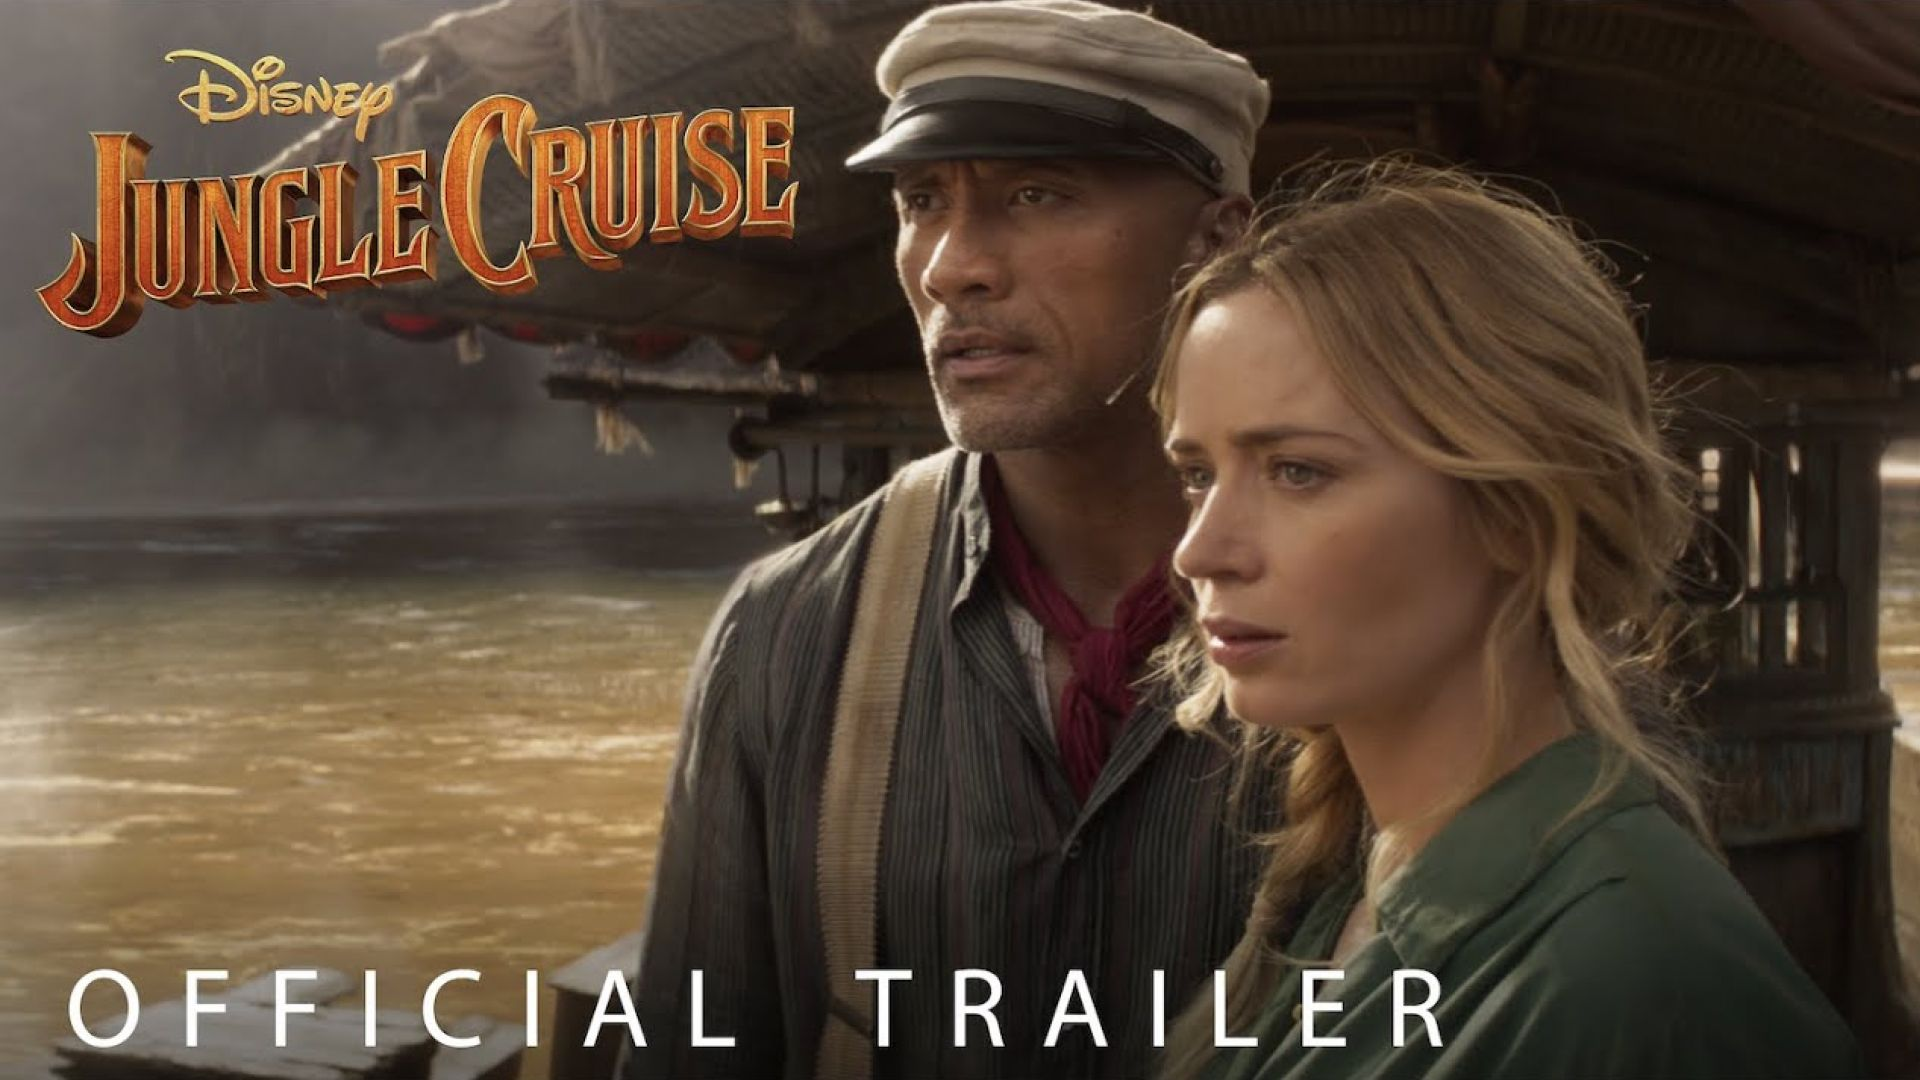 Disney's Jungle Cruise | Official Trailer